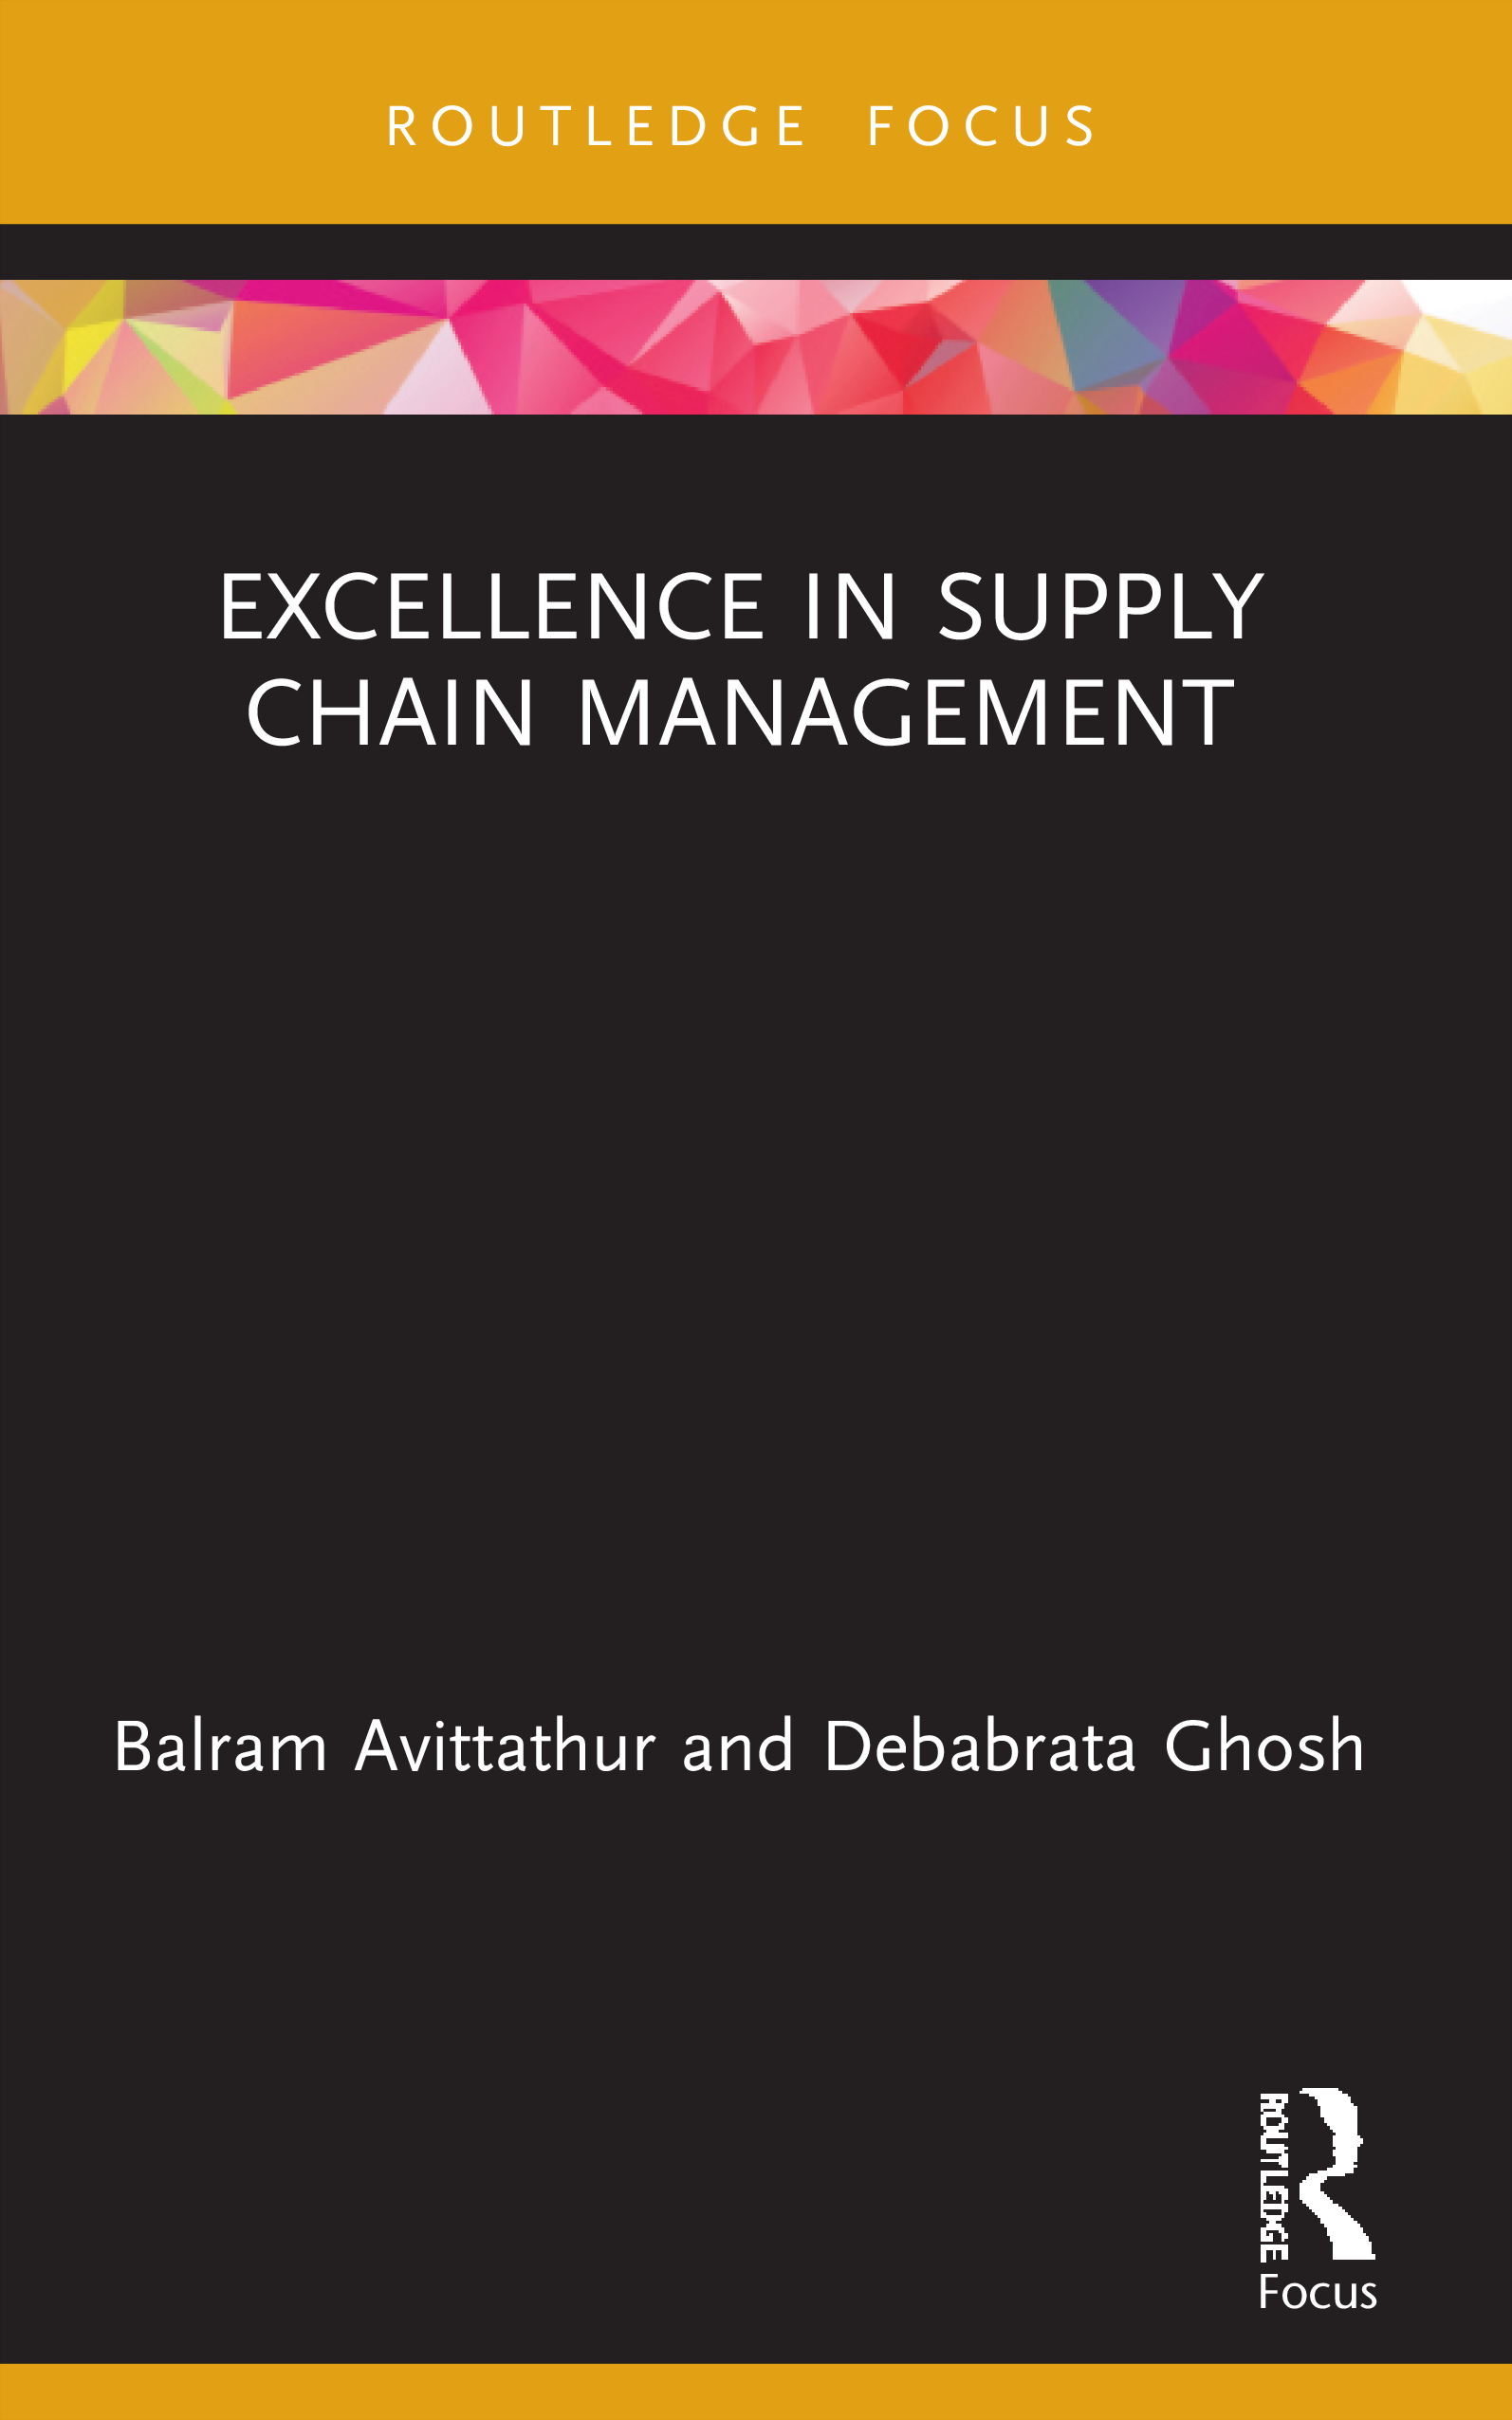 Excellence in Supply Chain Management